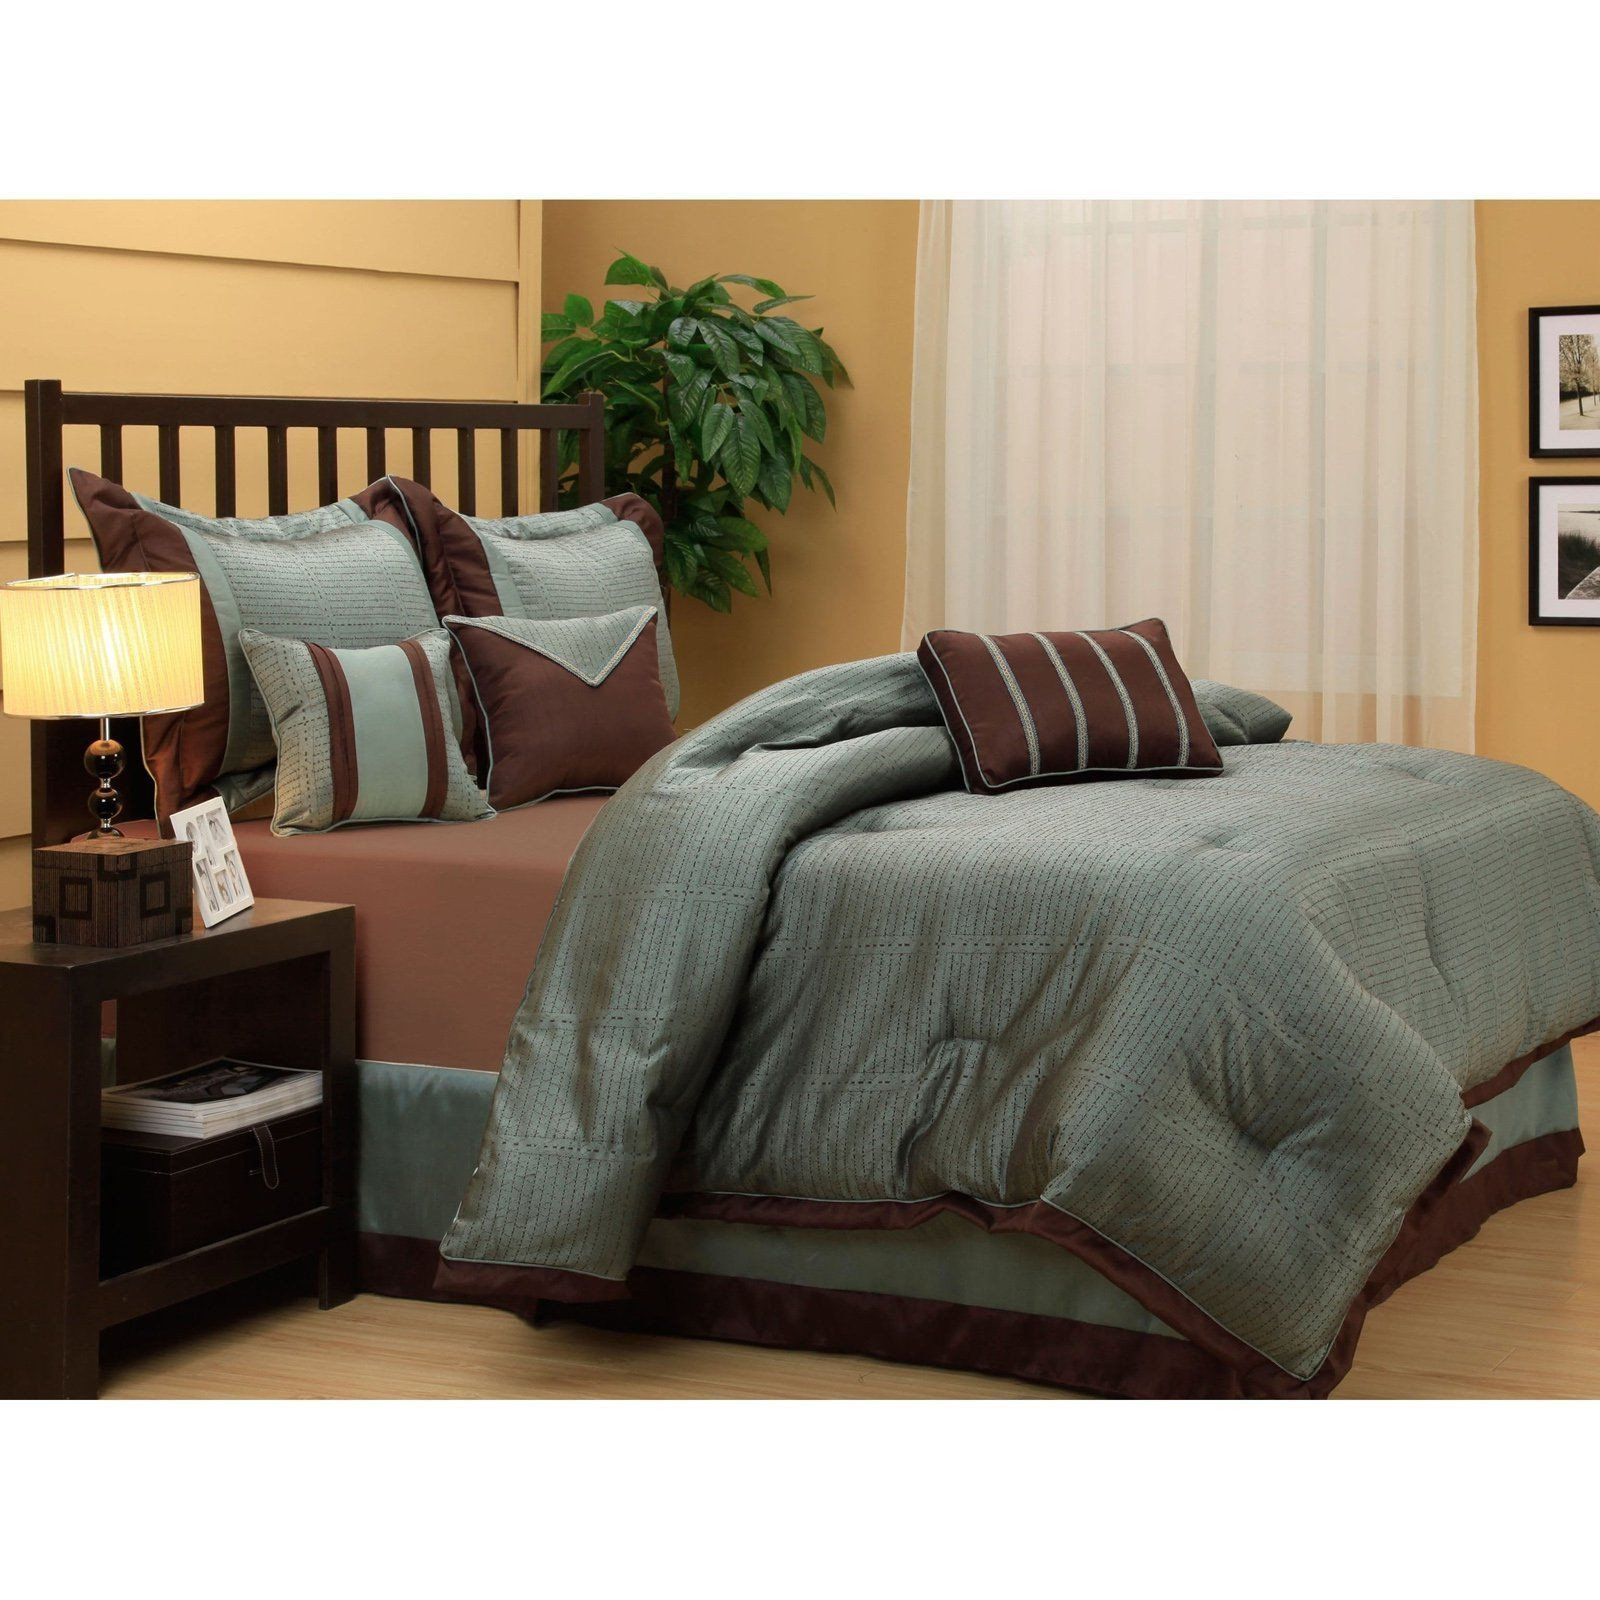 7 Piece Bedroom Set Beautiful tobey 7 Piece Bedding Set by Nanshing